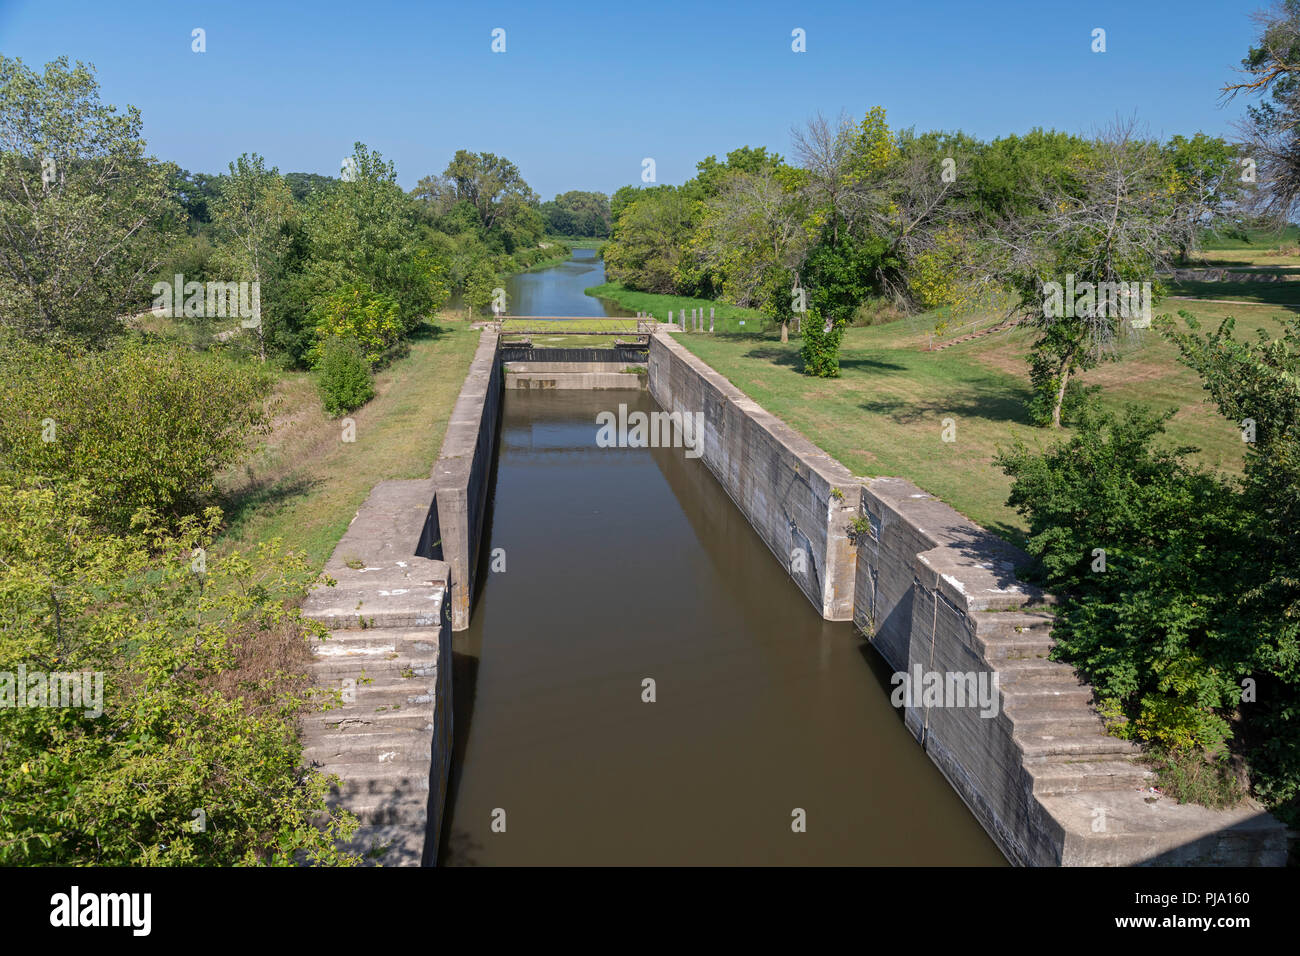 Wyanet, Illinois - Lock 19 on the Hennepin Canal. The canal was completed in 1907 to link the Illinois and Mississippi Rivers, but it was obsolete alm Stock Photo